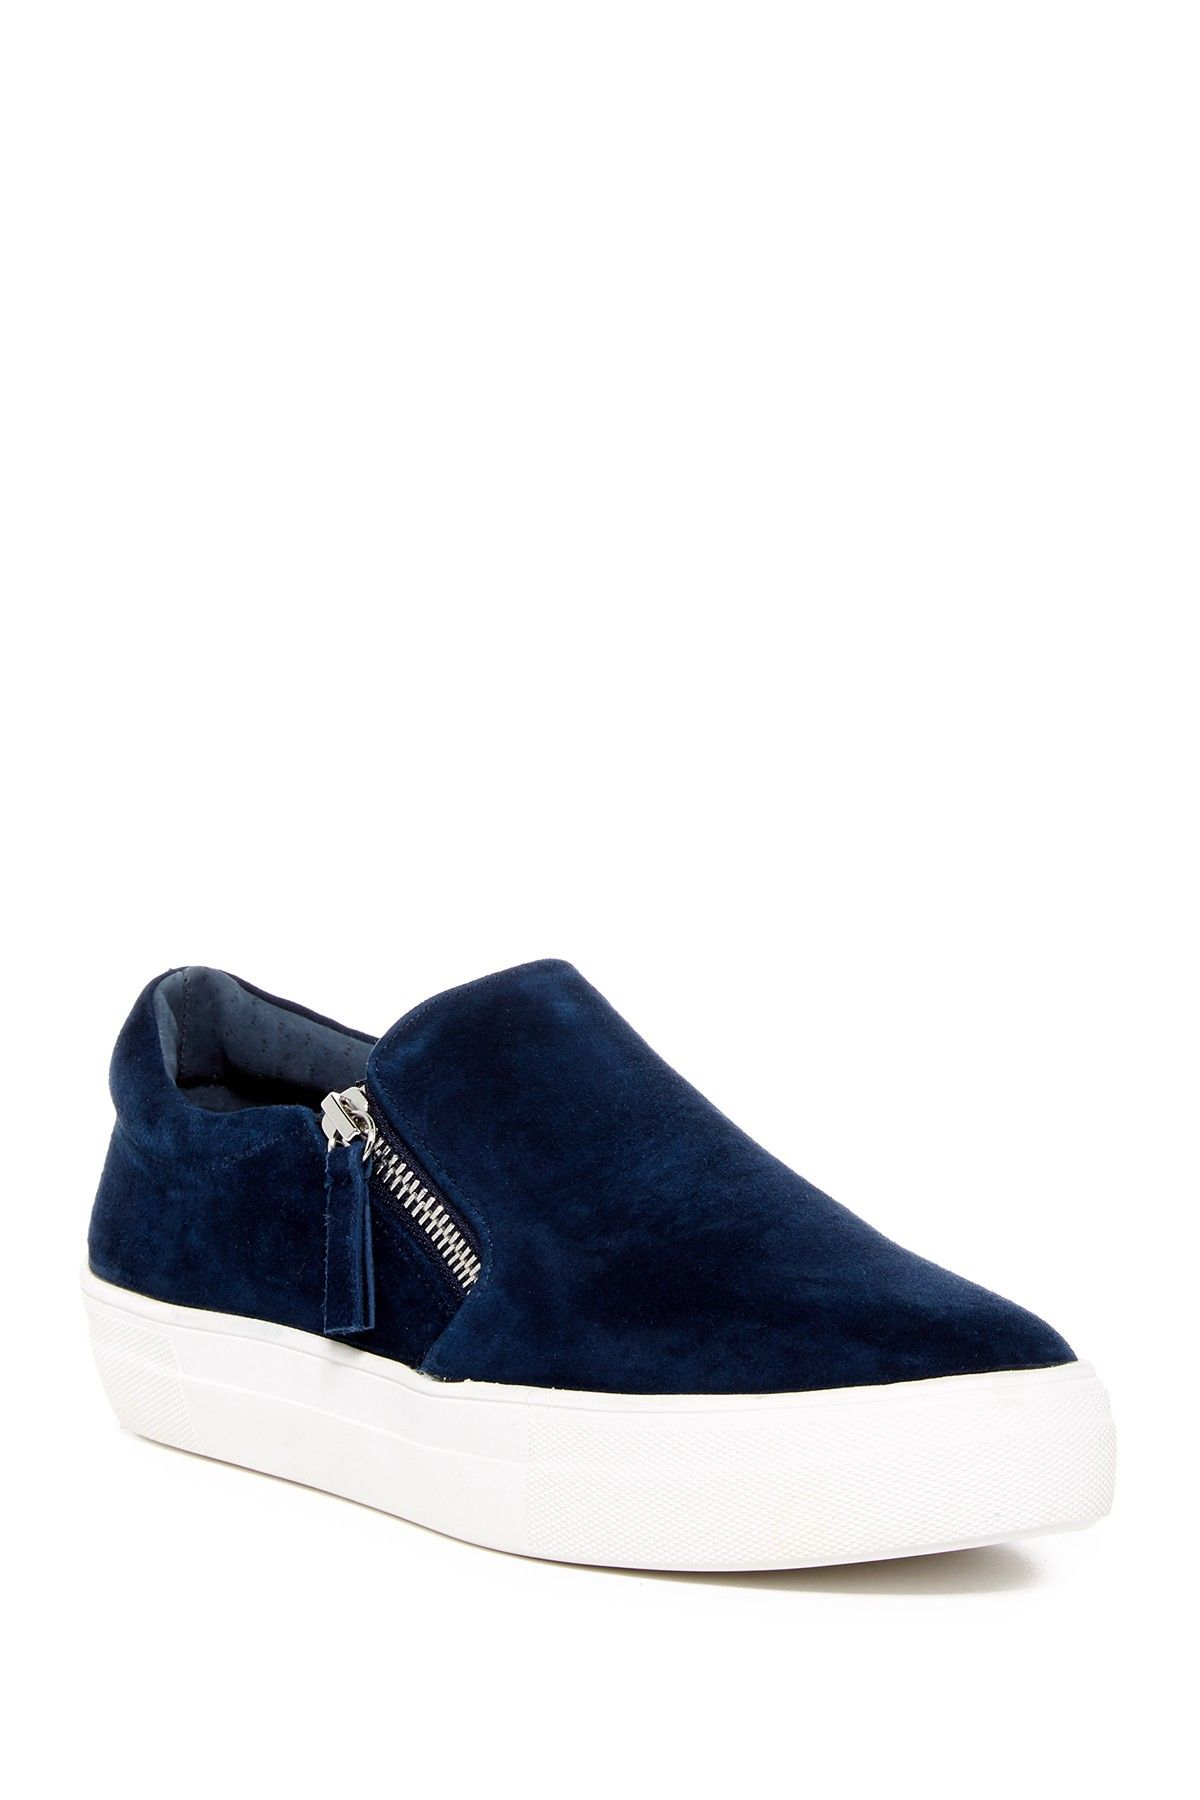 c65ca958e42 Steve Madden Glaammar Zip Embossed Sneaker | Products | Shoes ...